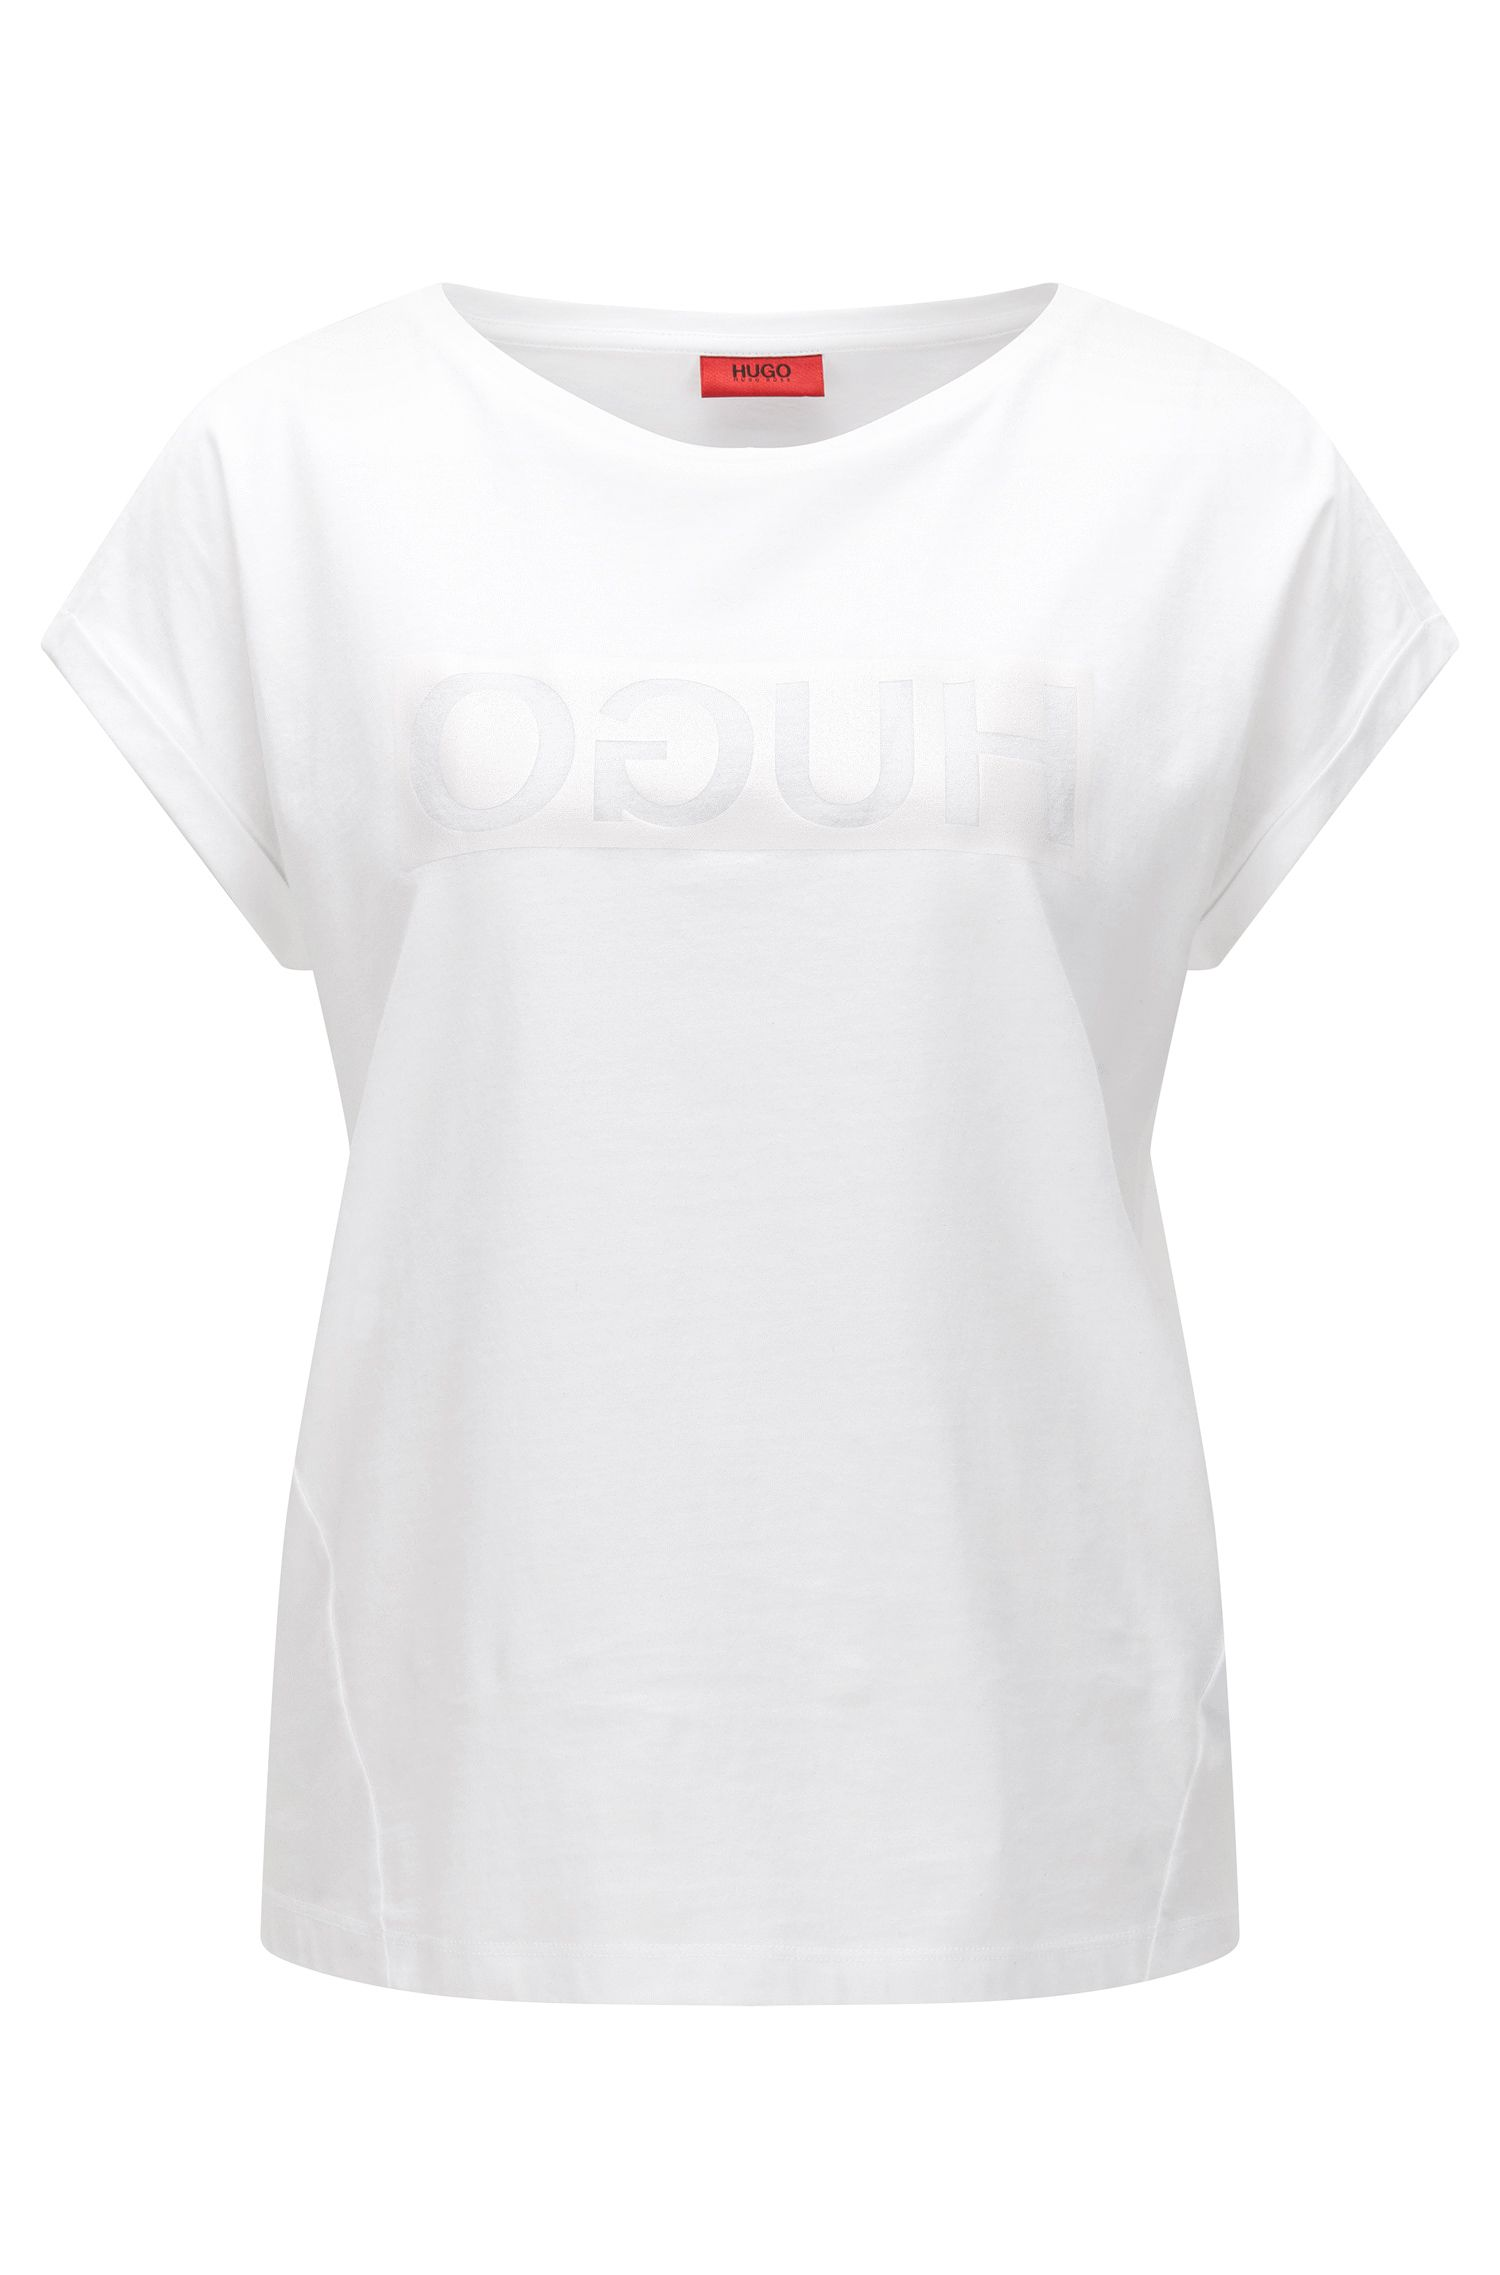 Relaxed-fit T-shirt in cotton with reverse logo